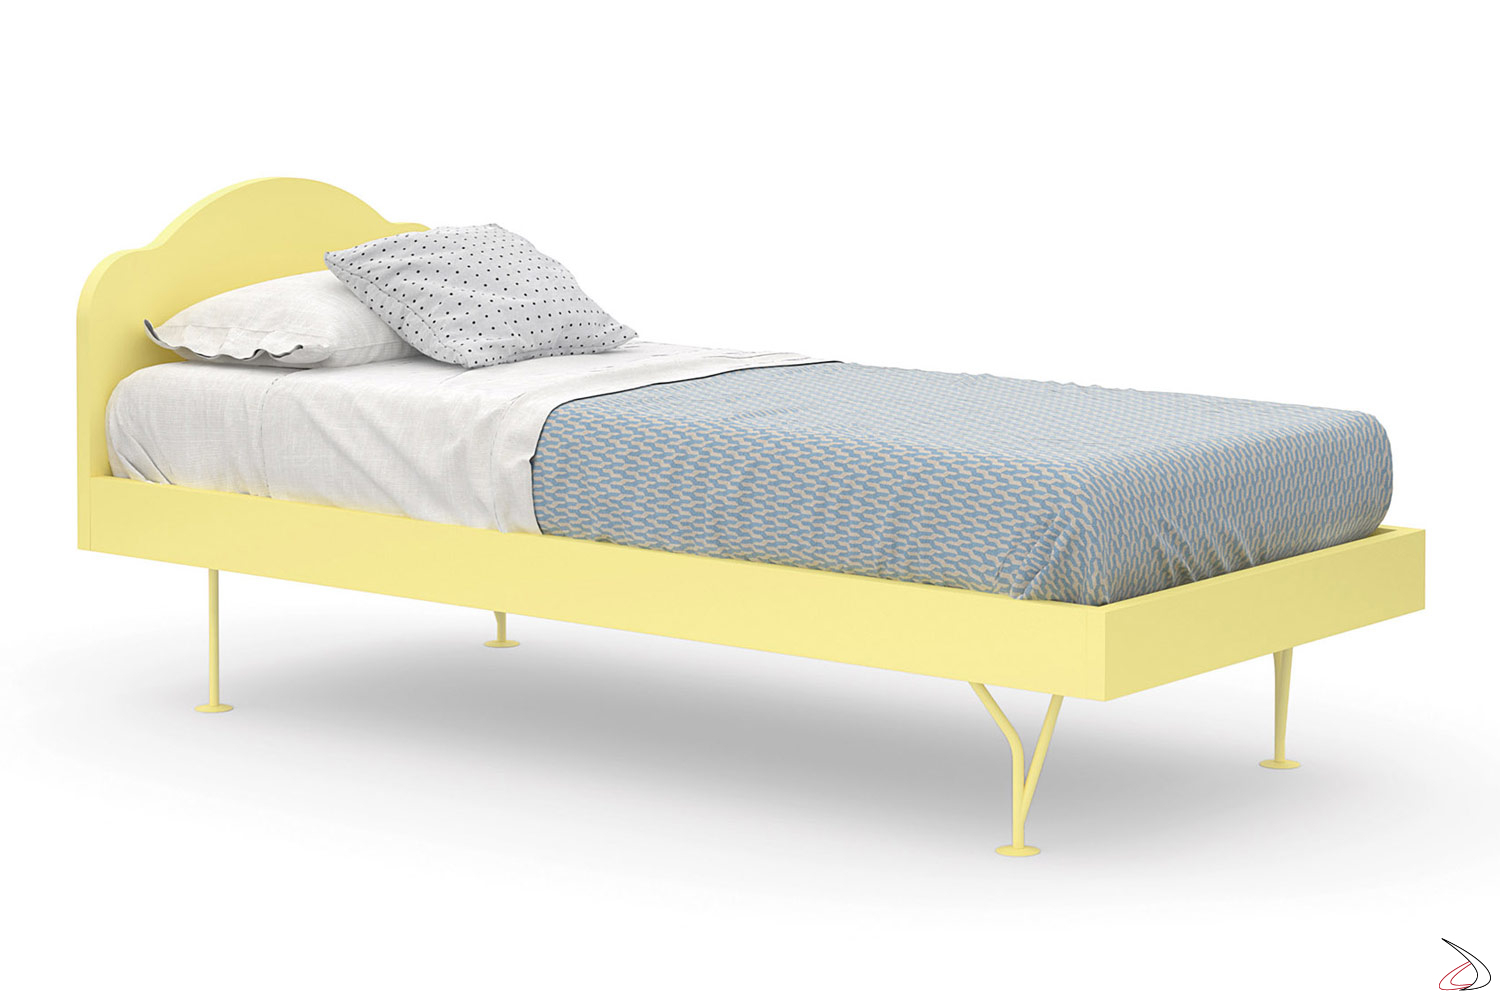 Chaise Longue Letto Singolo.Mino Wooden Single Bed For Children Toparredi Arredo Design Online